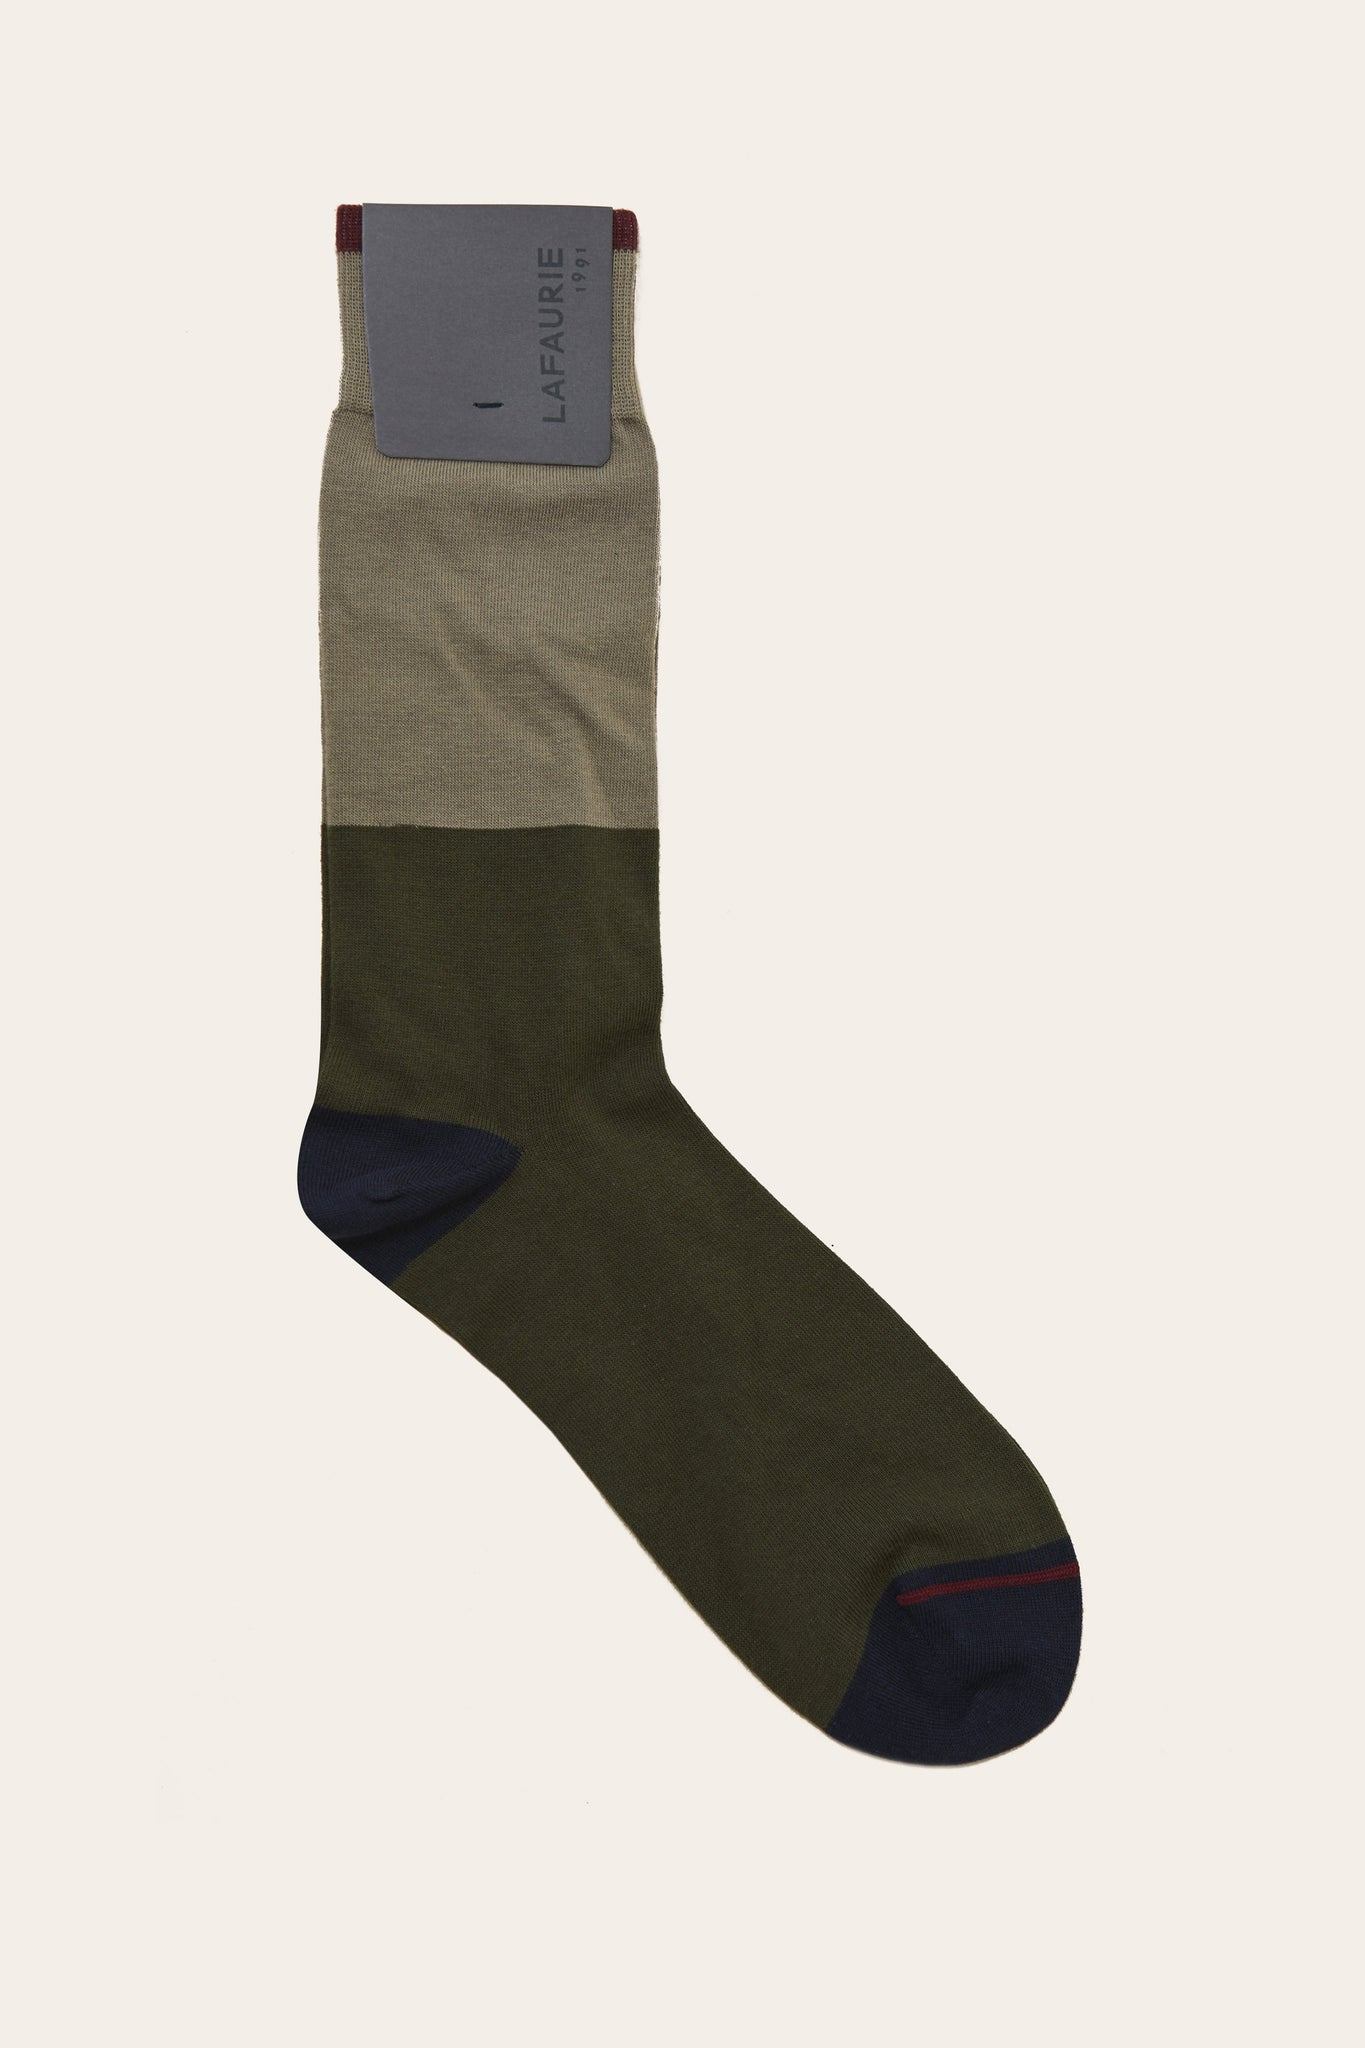 Chaussettes Samson - Taupe - LAFAURIE